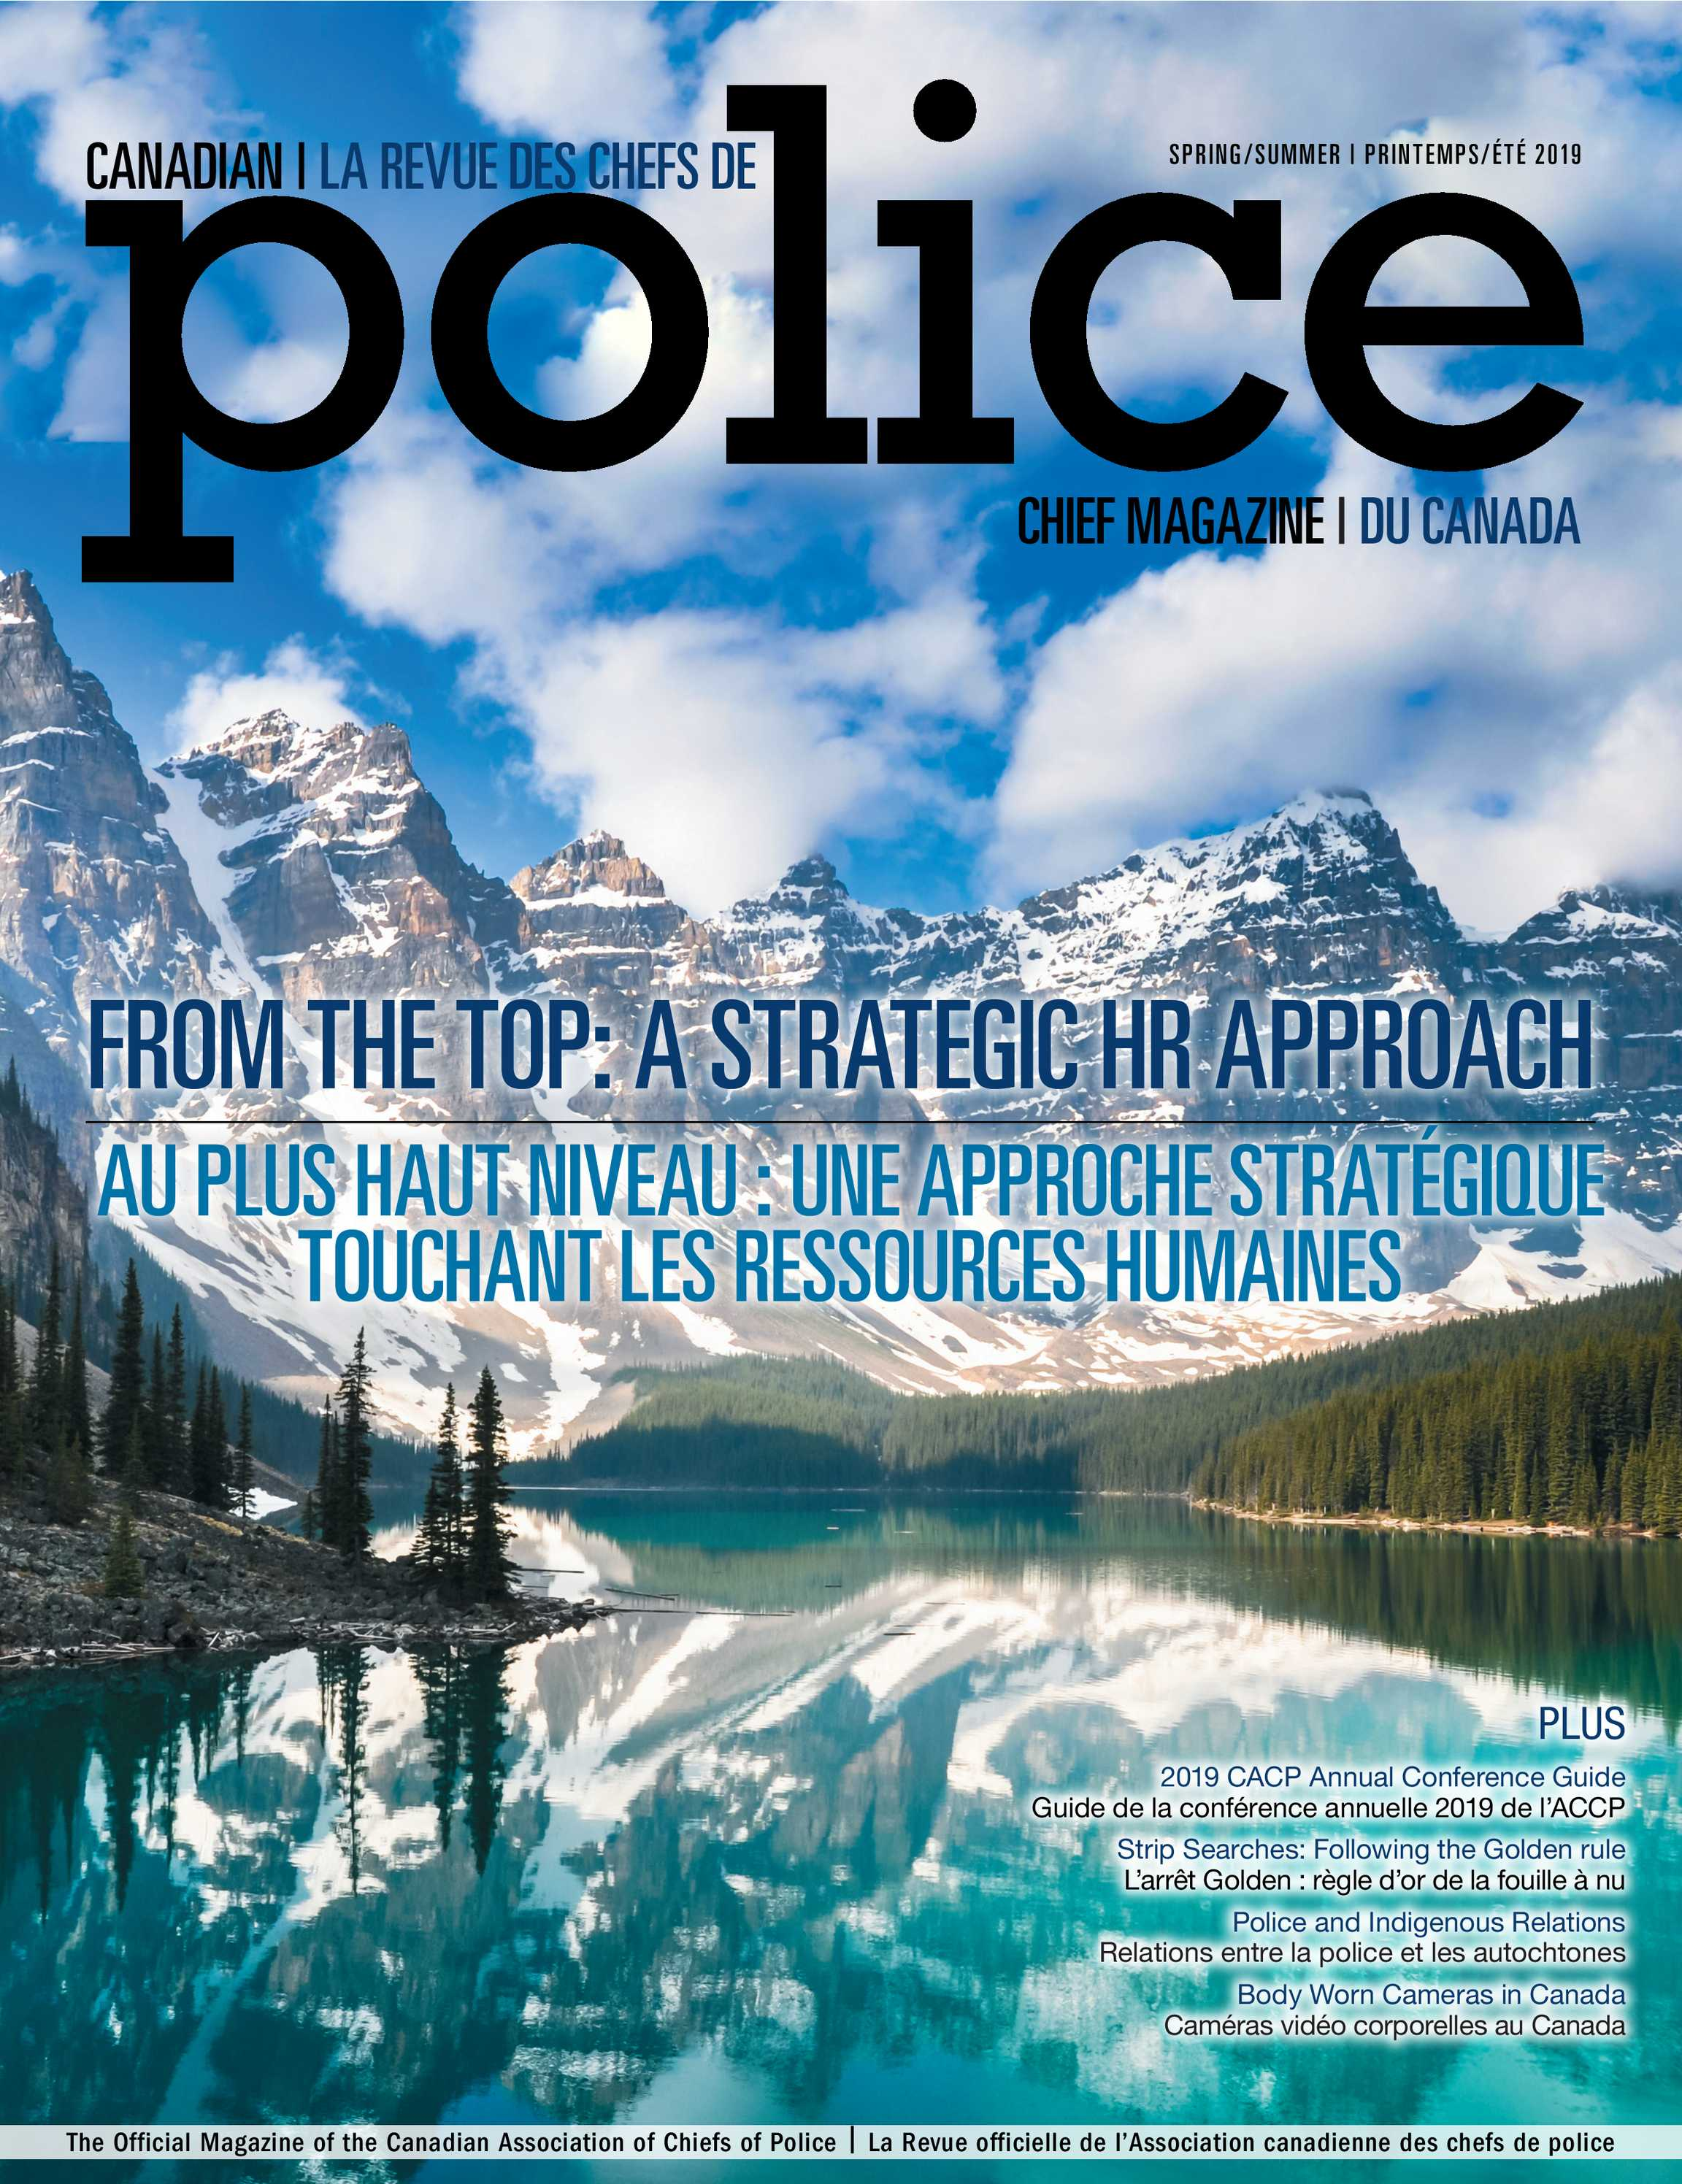 Canadian Police Chief Magazine (CCPT) - Spring/Summer 2019